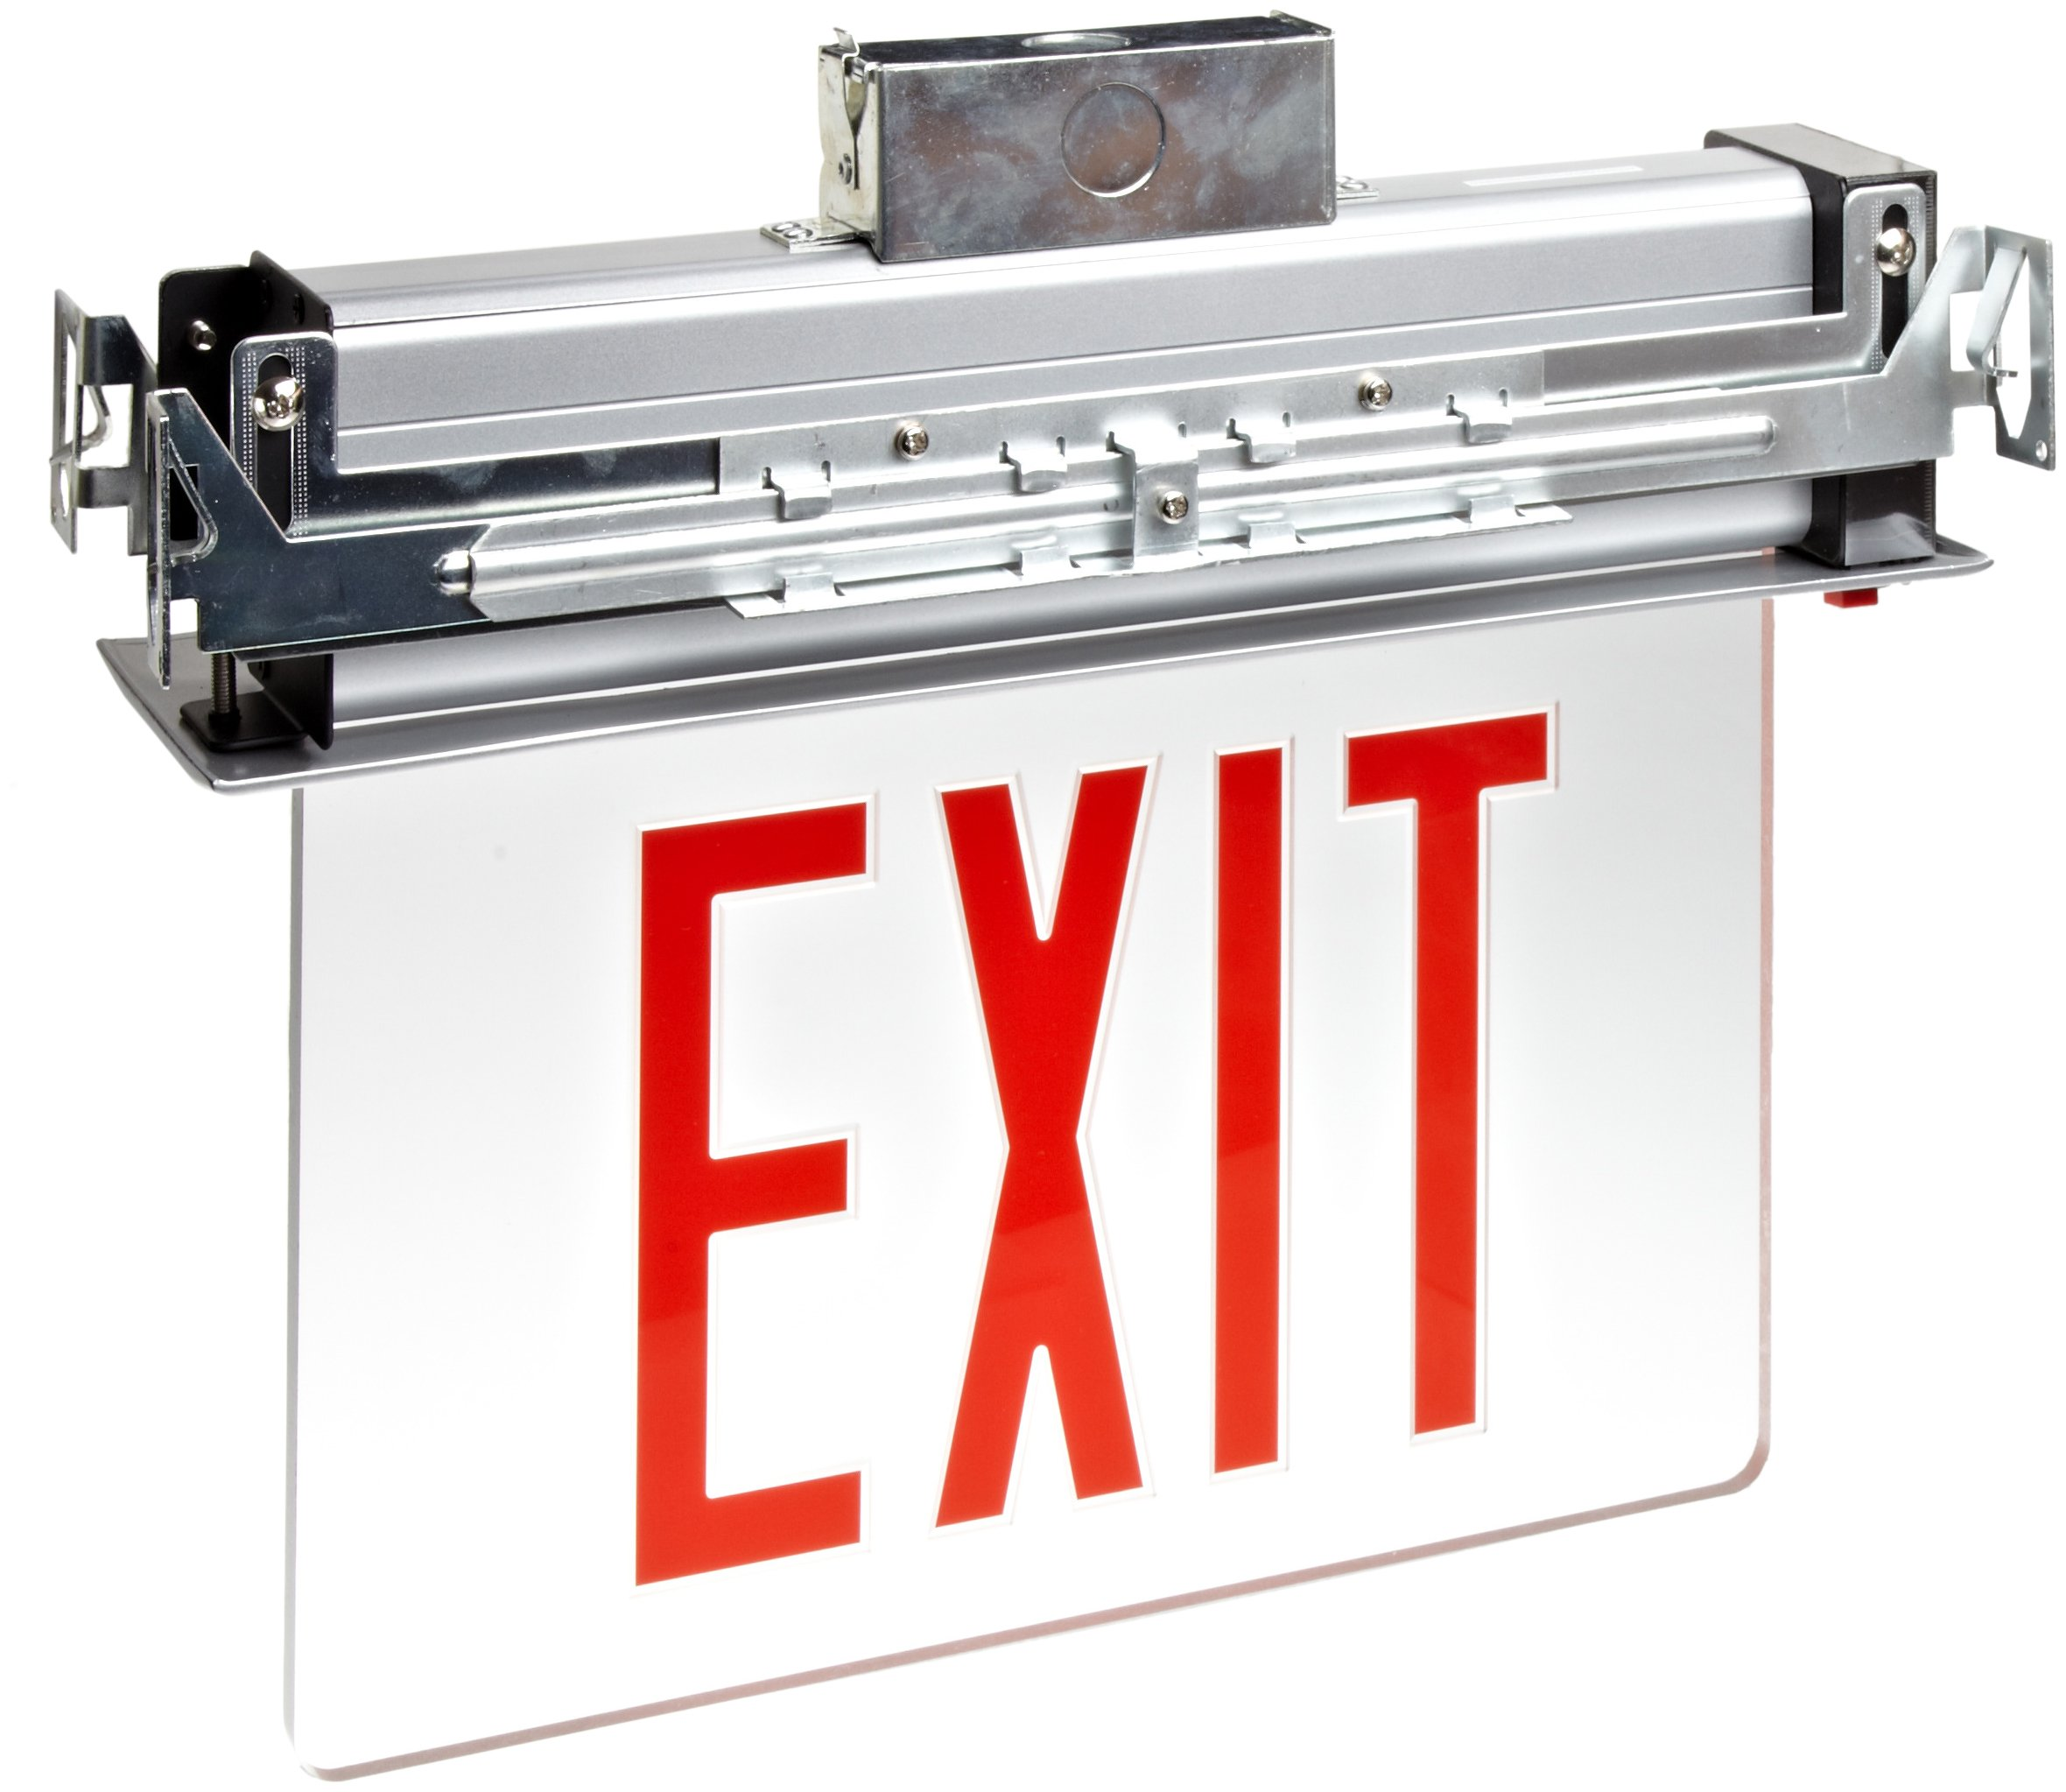 Morris Products 73330 Recessed Mount Edge Lit LED Exit Sign, Red on Clear Panel Color, Anodized Aluminum Housing